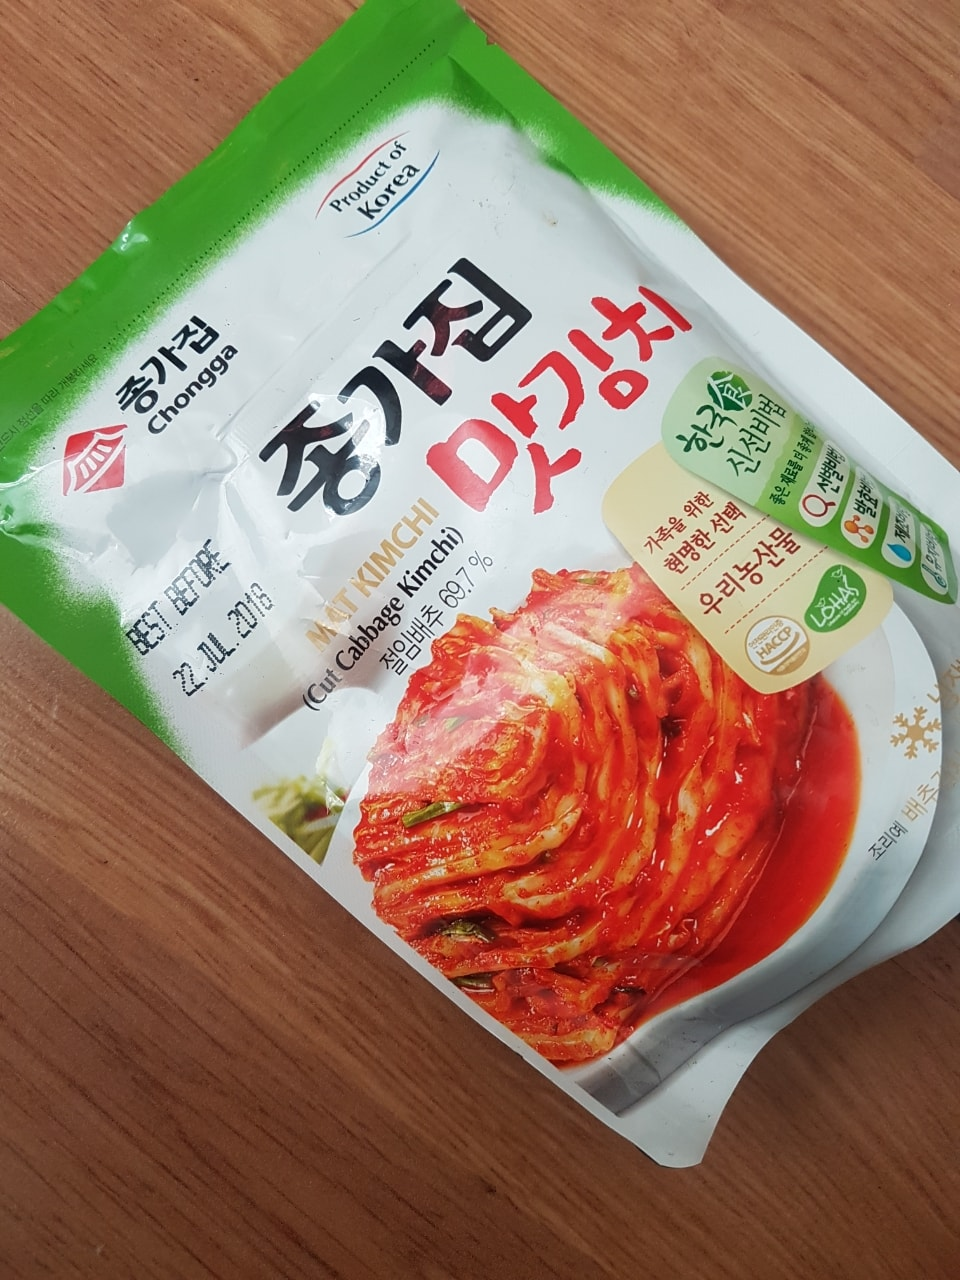 Kimchi, slightly out of date